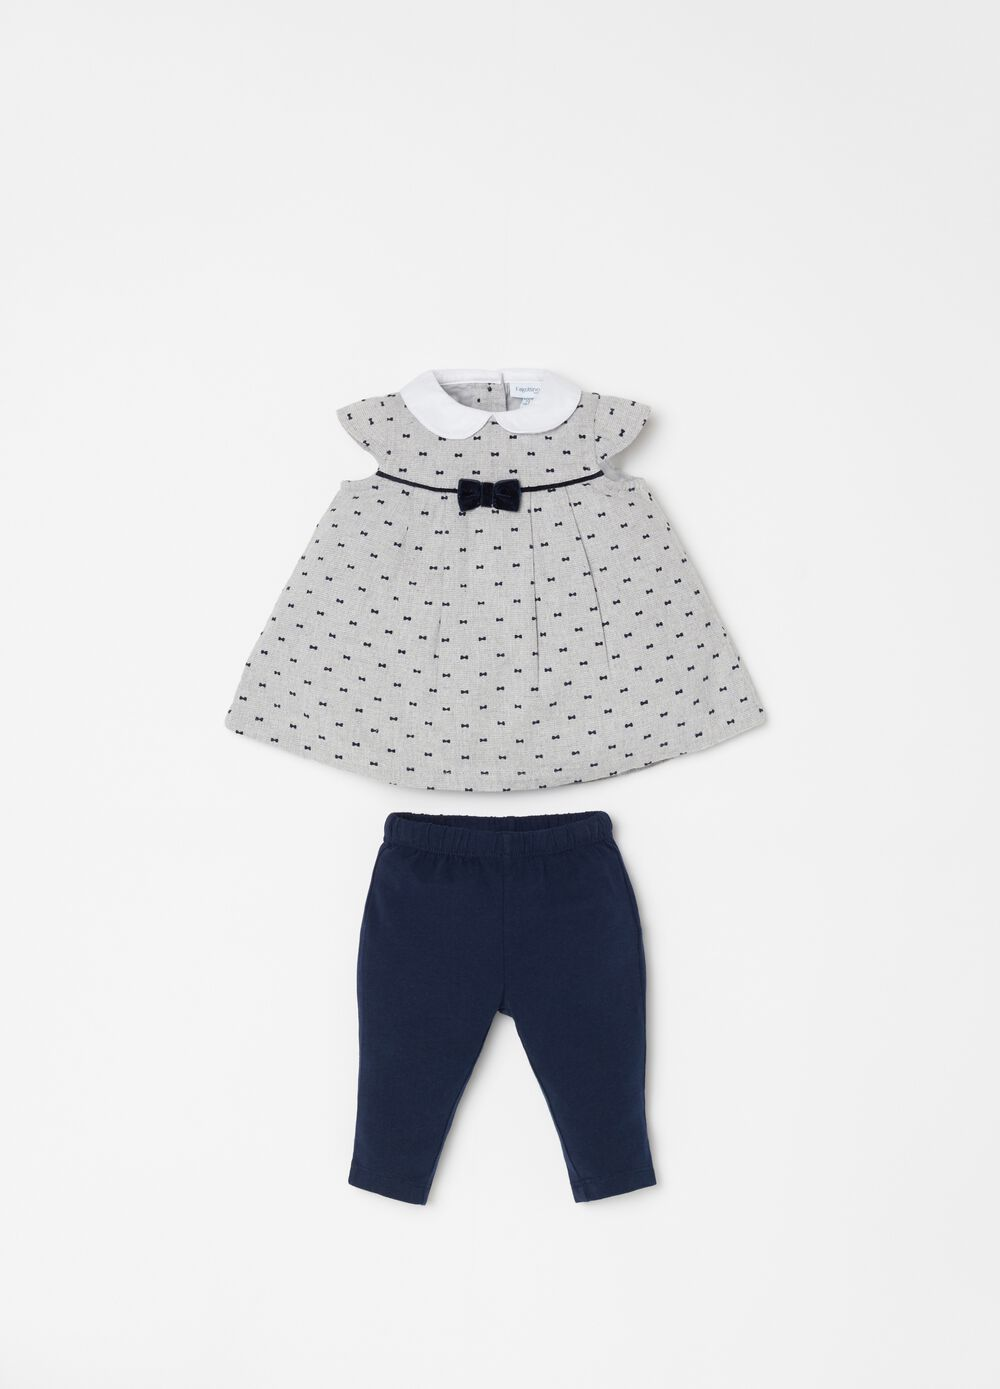 Leggings and dress set with embroidery